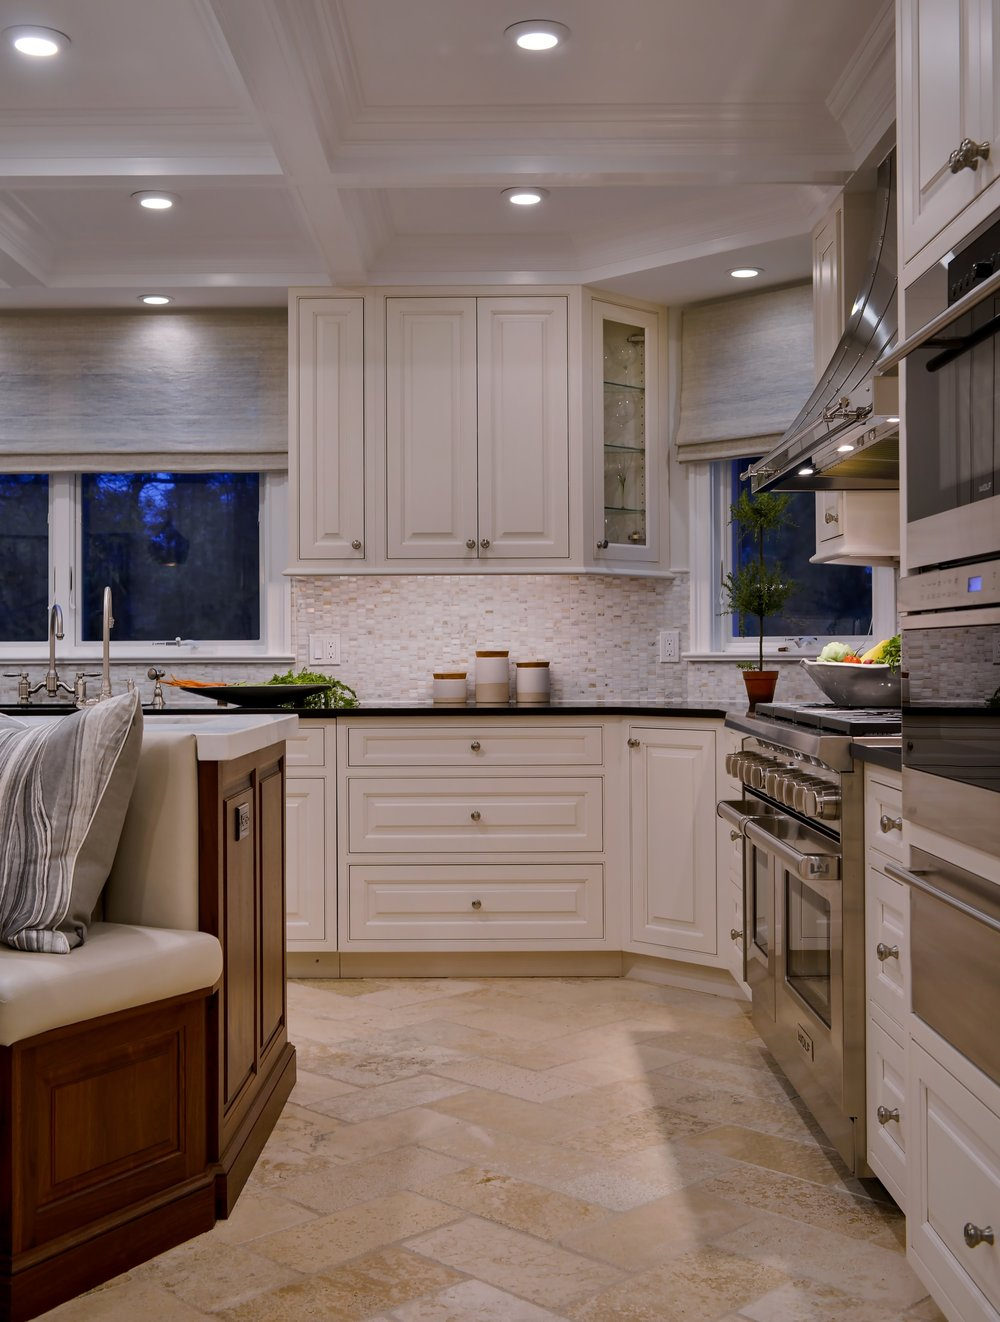 Transitional style kitchen with upper and under cabinets